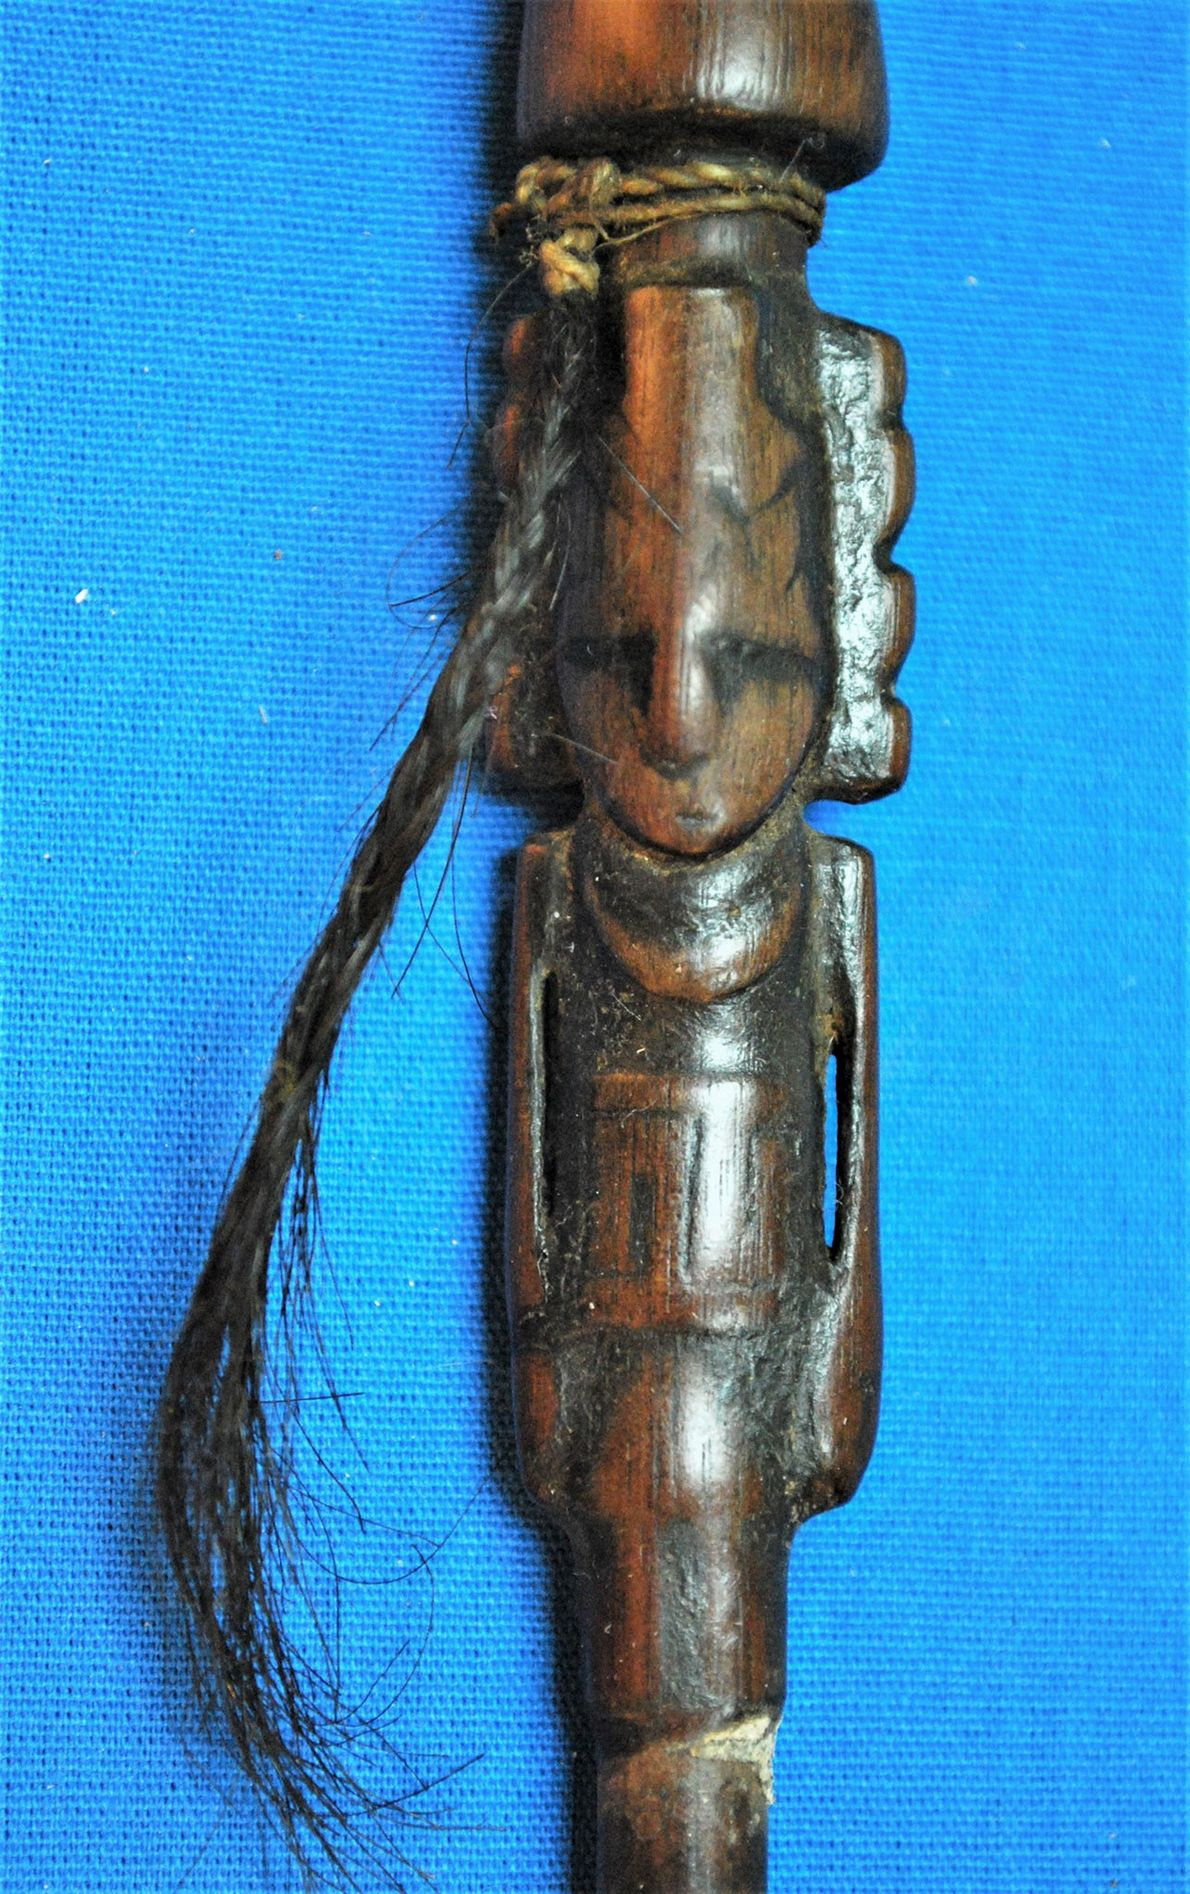 A snuffing tube found in the ritual bundle was carved in the form of a human-like ...